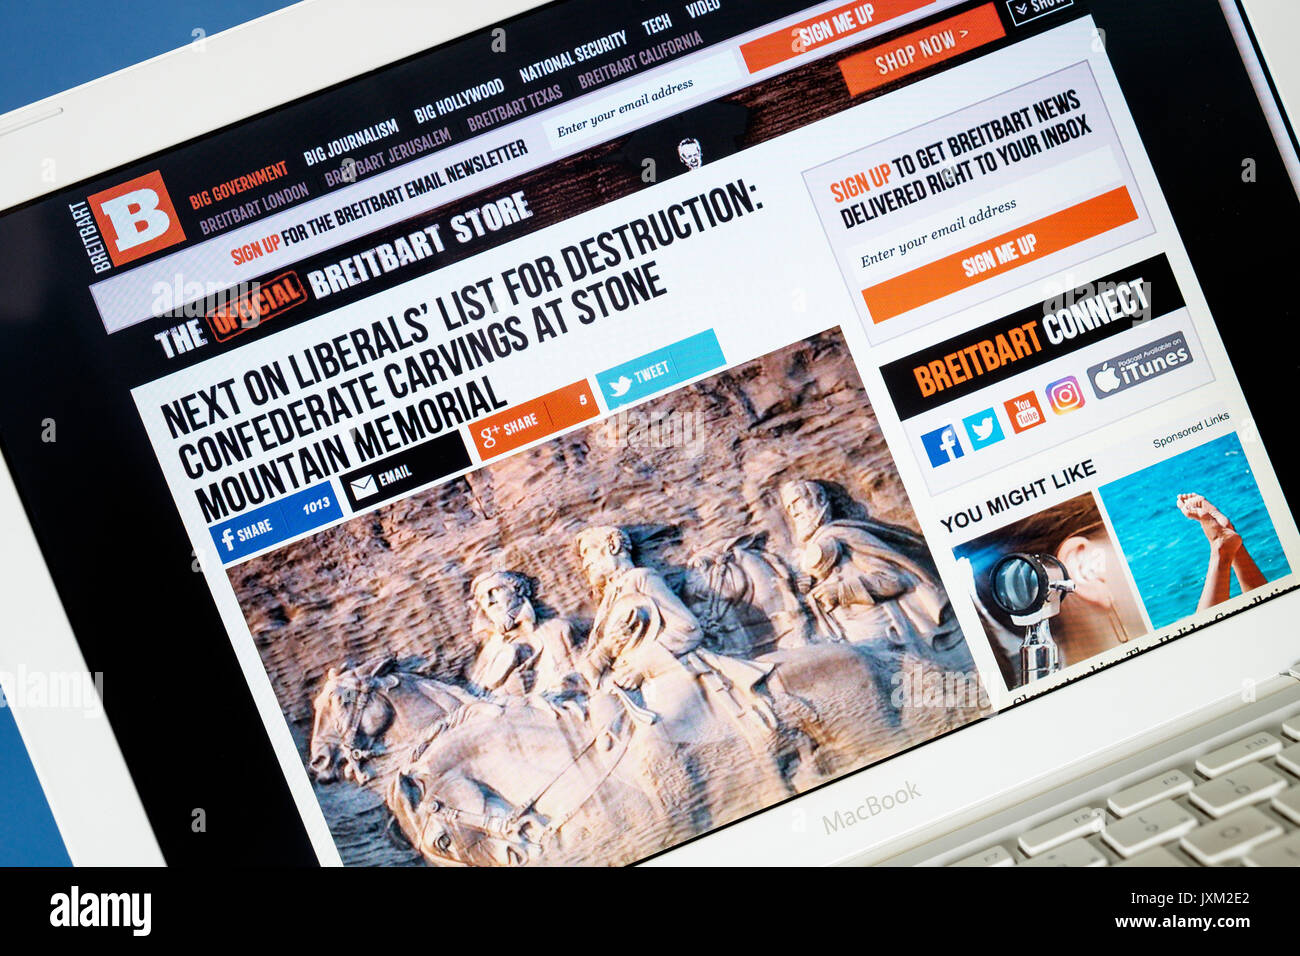 Computer monitor screen is pictured showing the far right, alt-right website Breitbart News a few days after the alt-right protest in Charlottesville - Stock Image